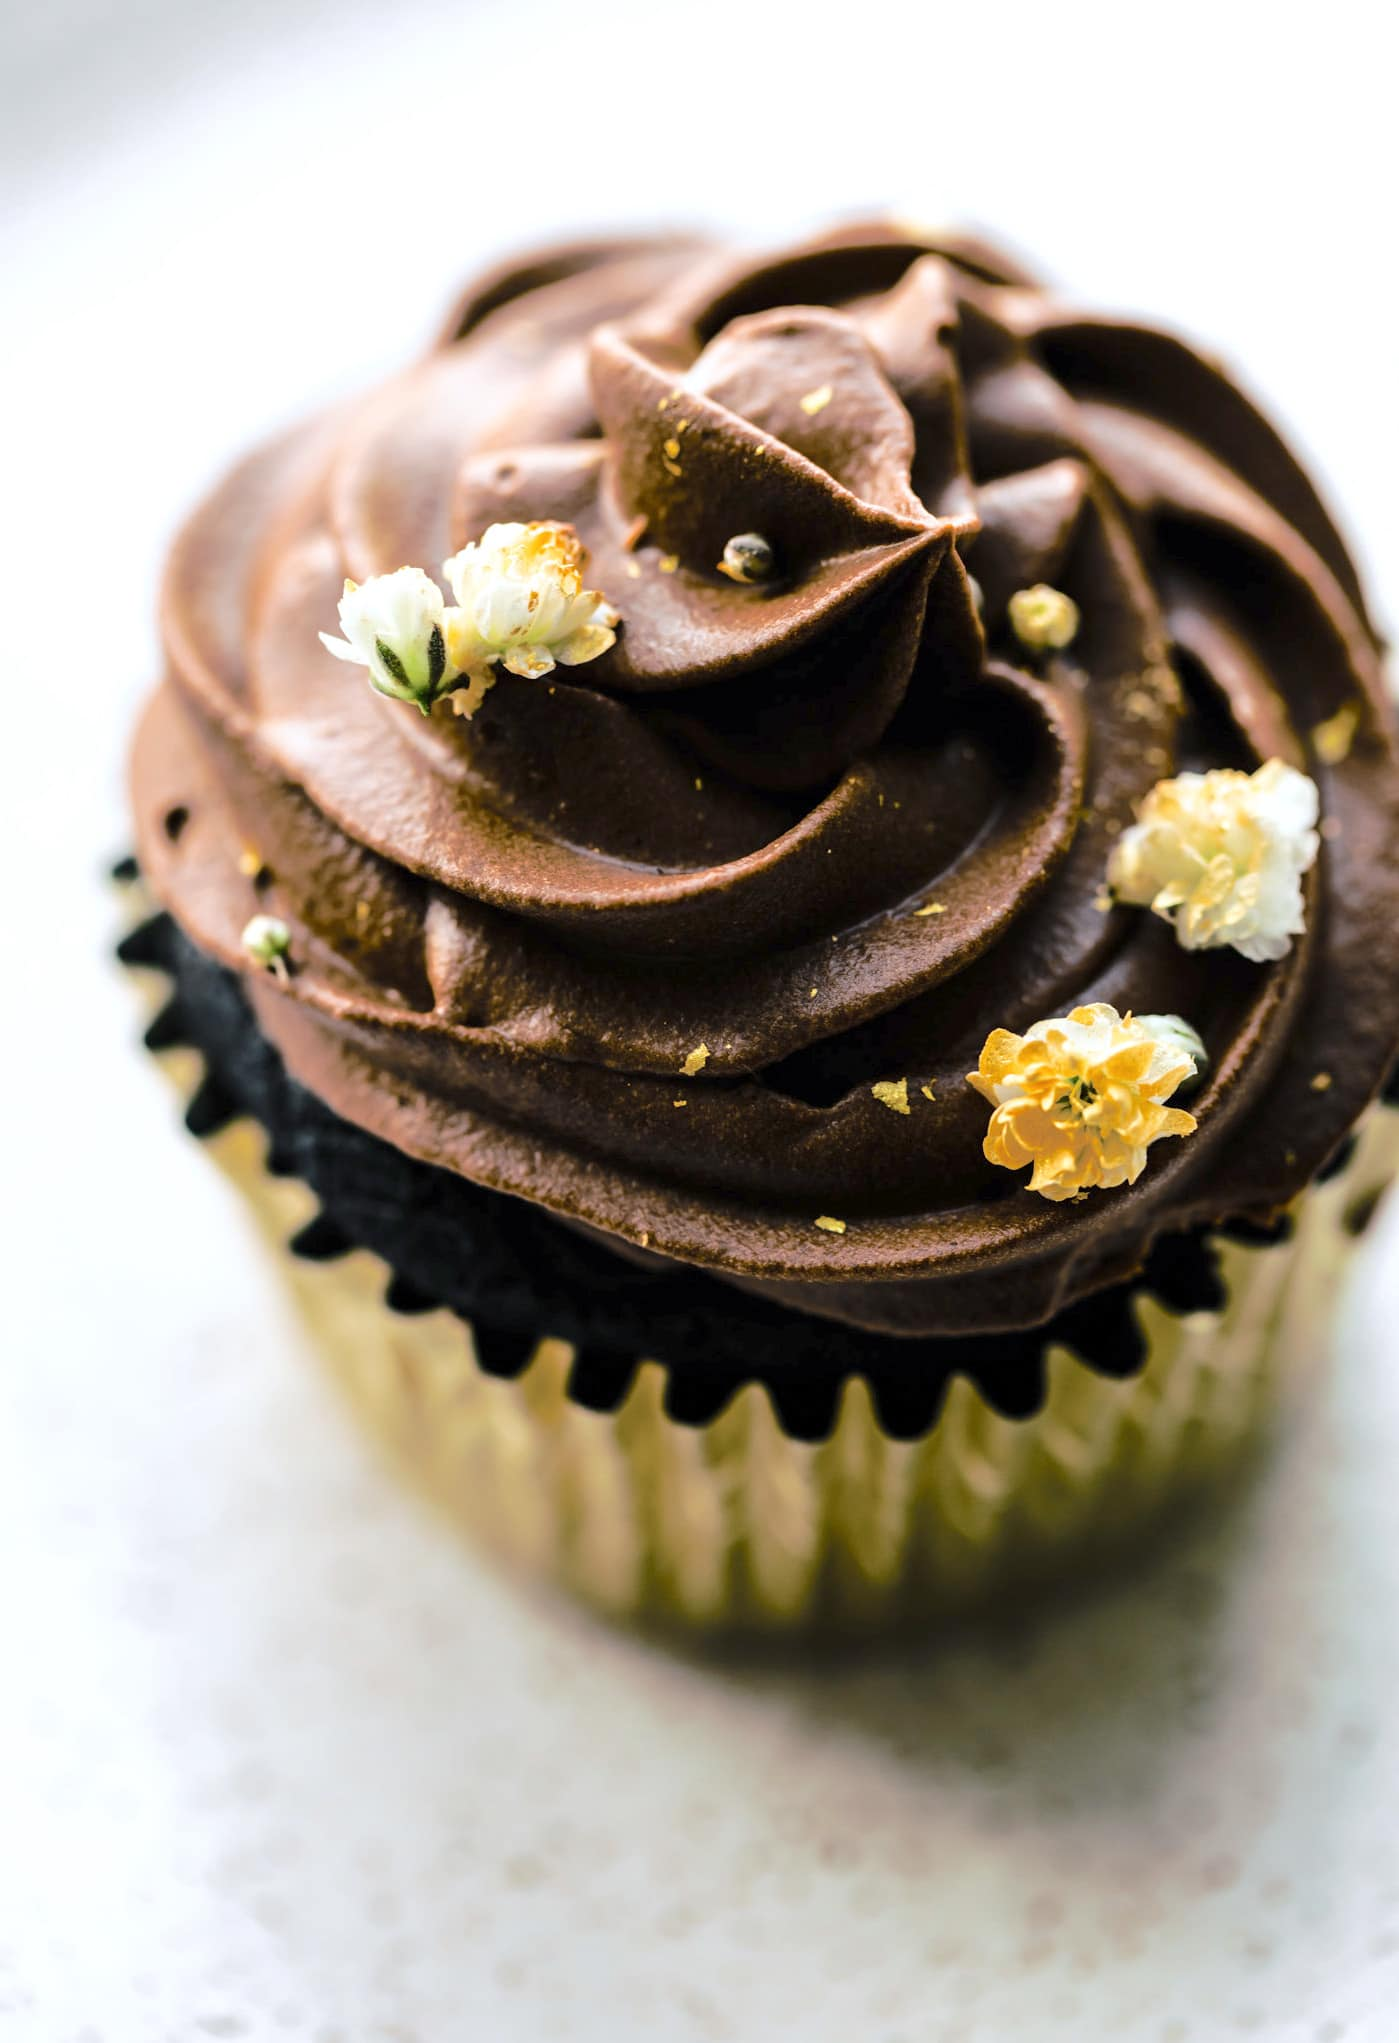 egg free chocolate cupcake with chocolate frosting and edible flowers on top